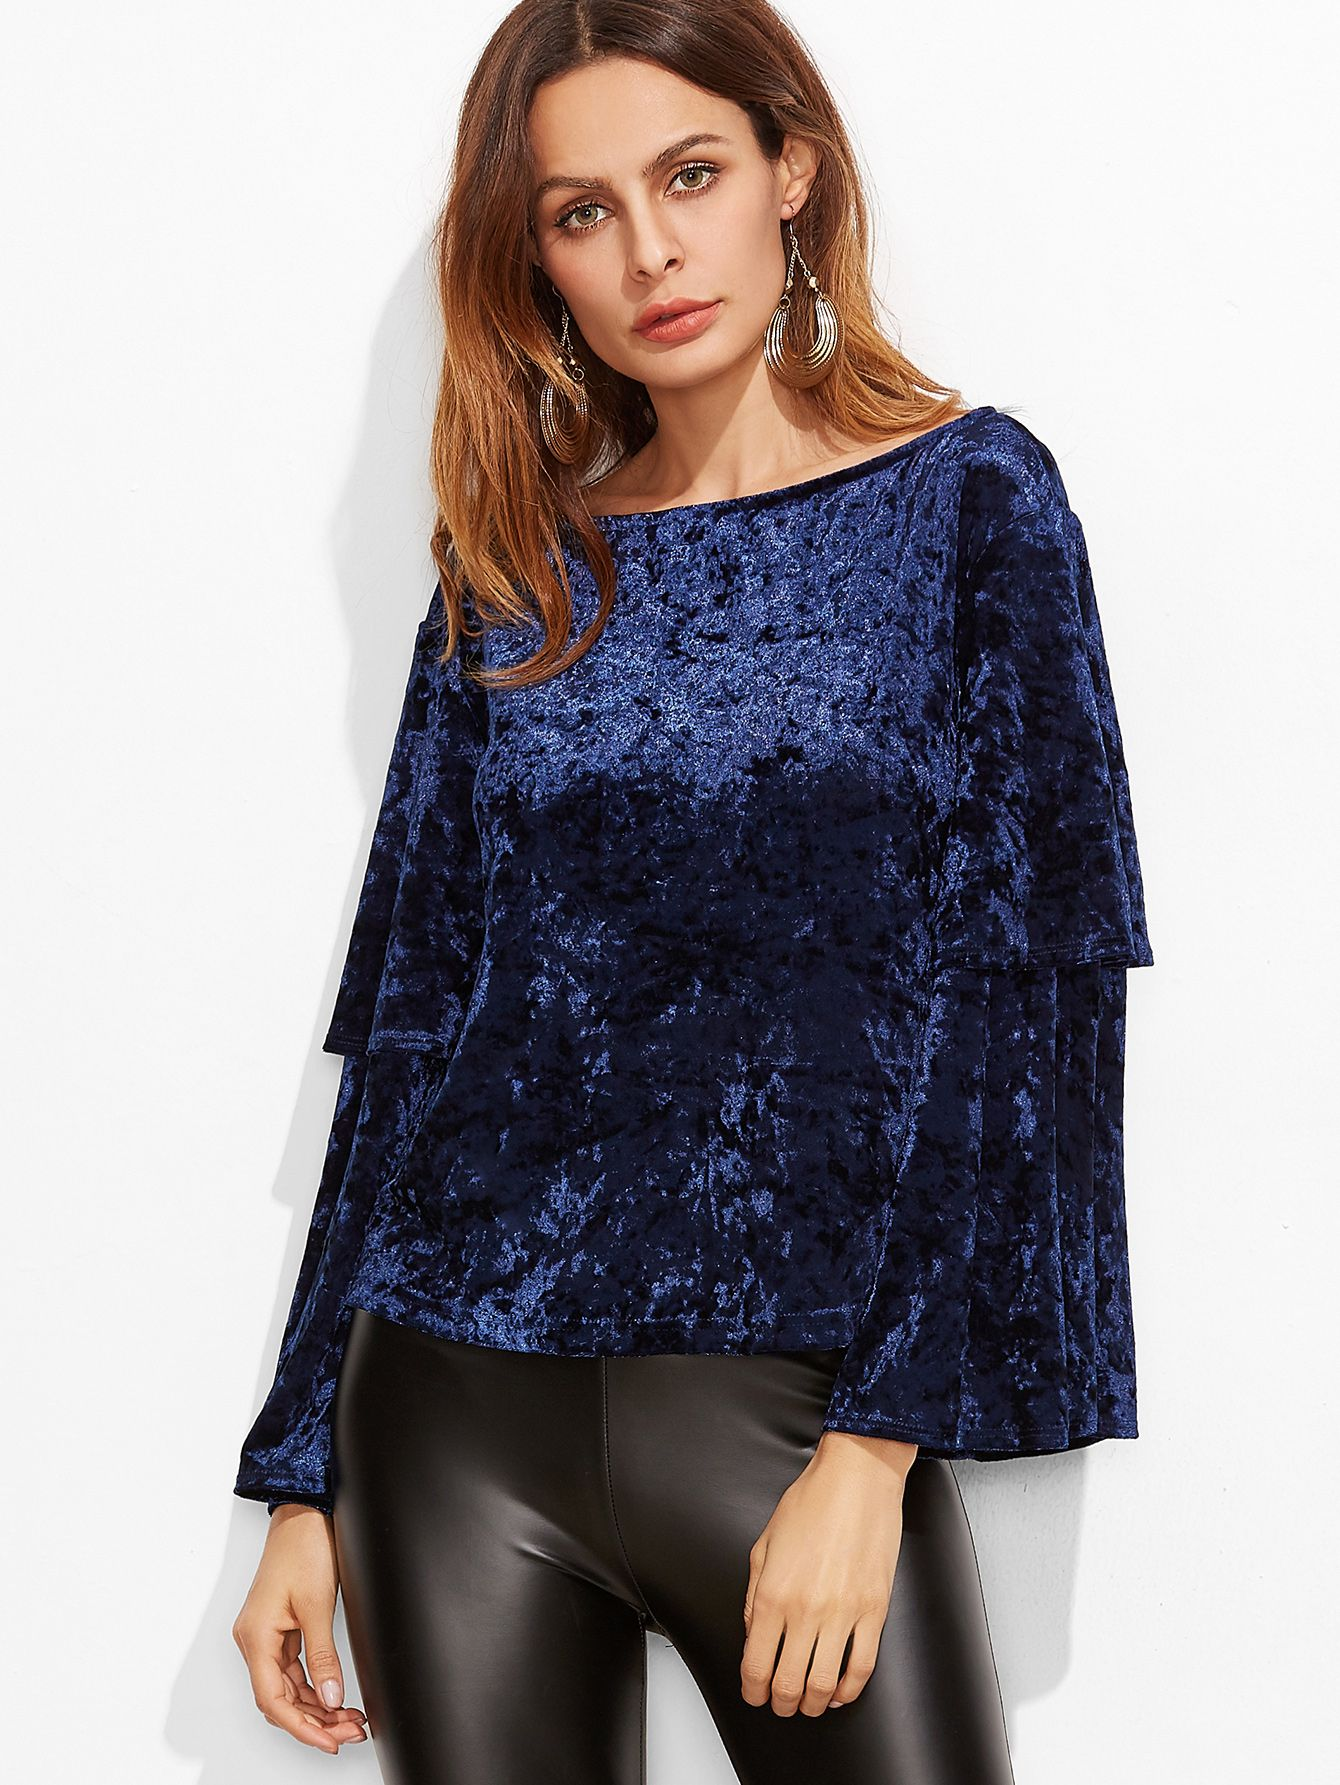 28117185e4 Shop Navy Boat Neck Layered Bell Sleeve Velvet Top online. SheIn offers  Navy Boat Neck Layered Bell Sleeve Velvet Top & more to fit your  fashionable needs.